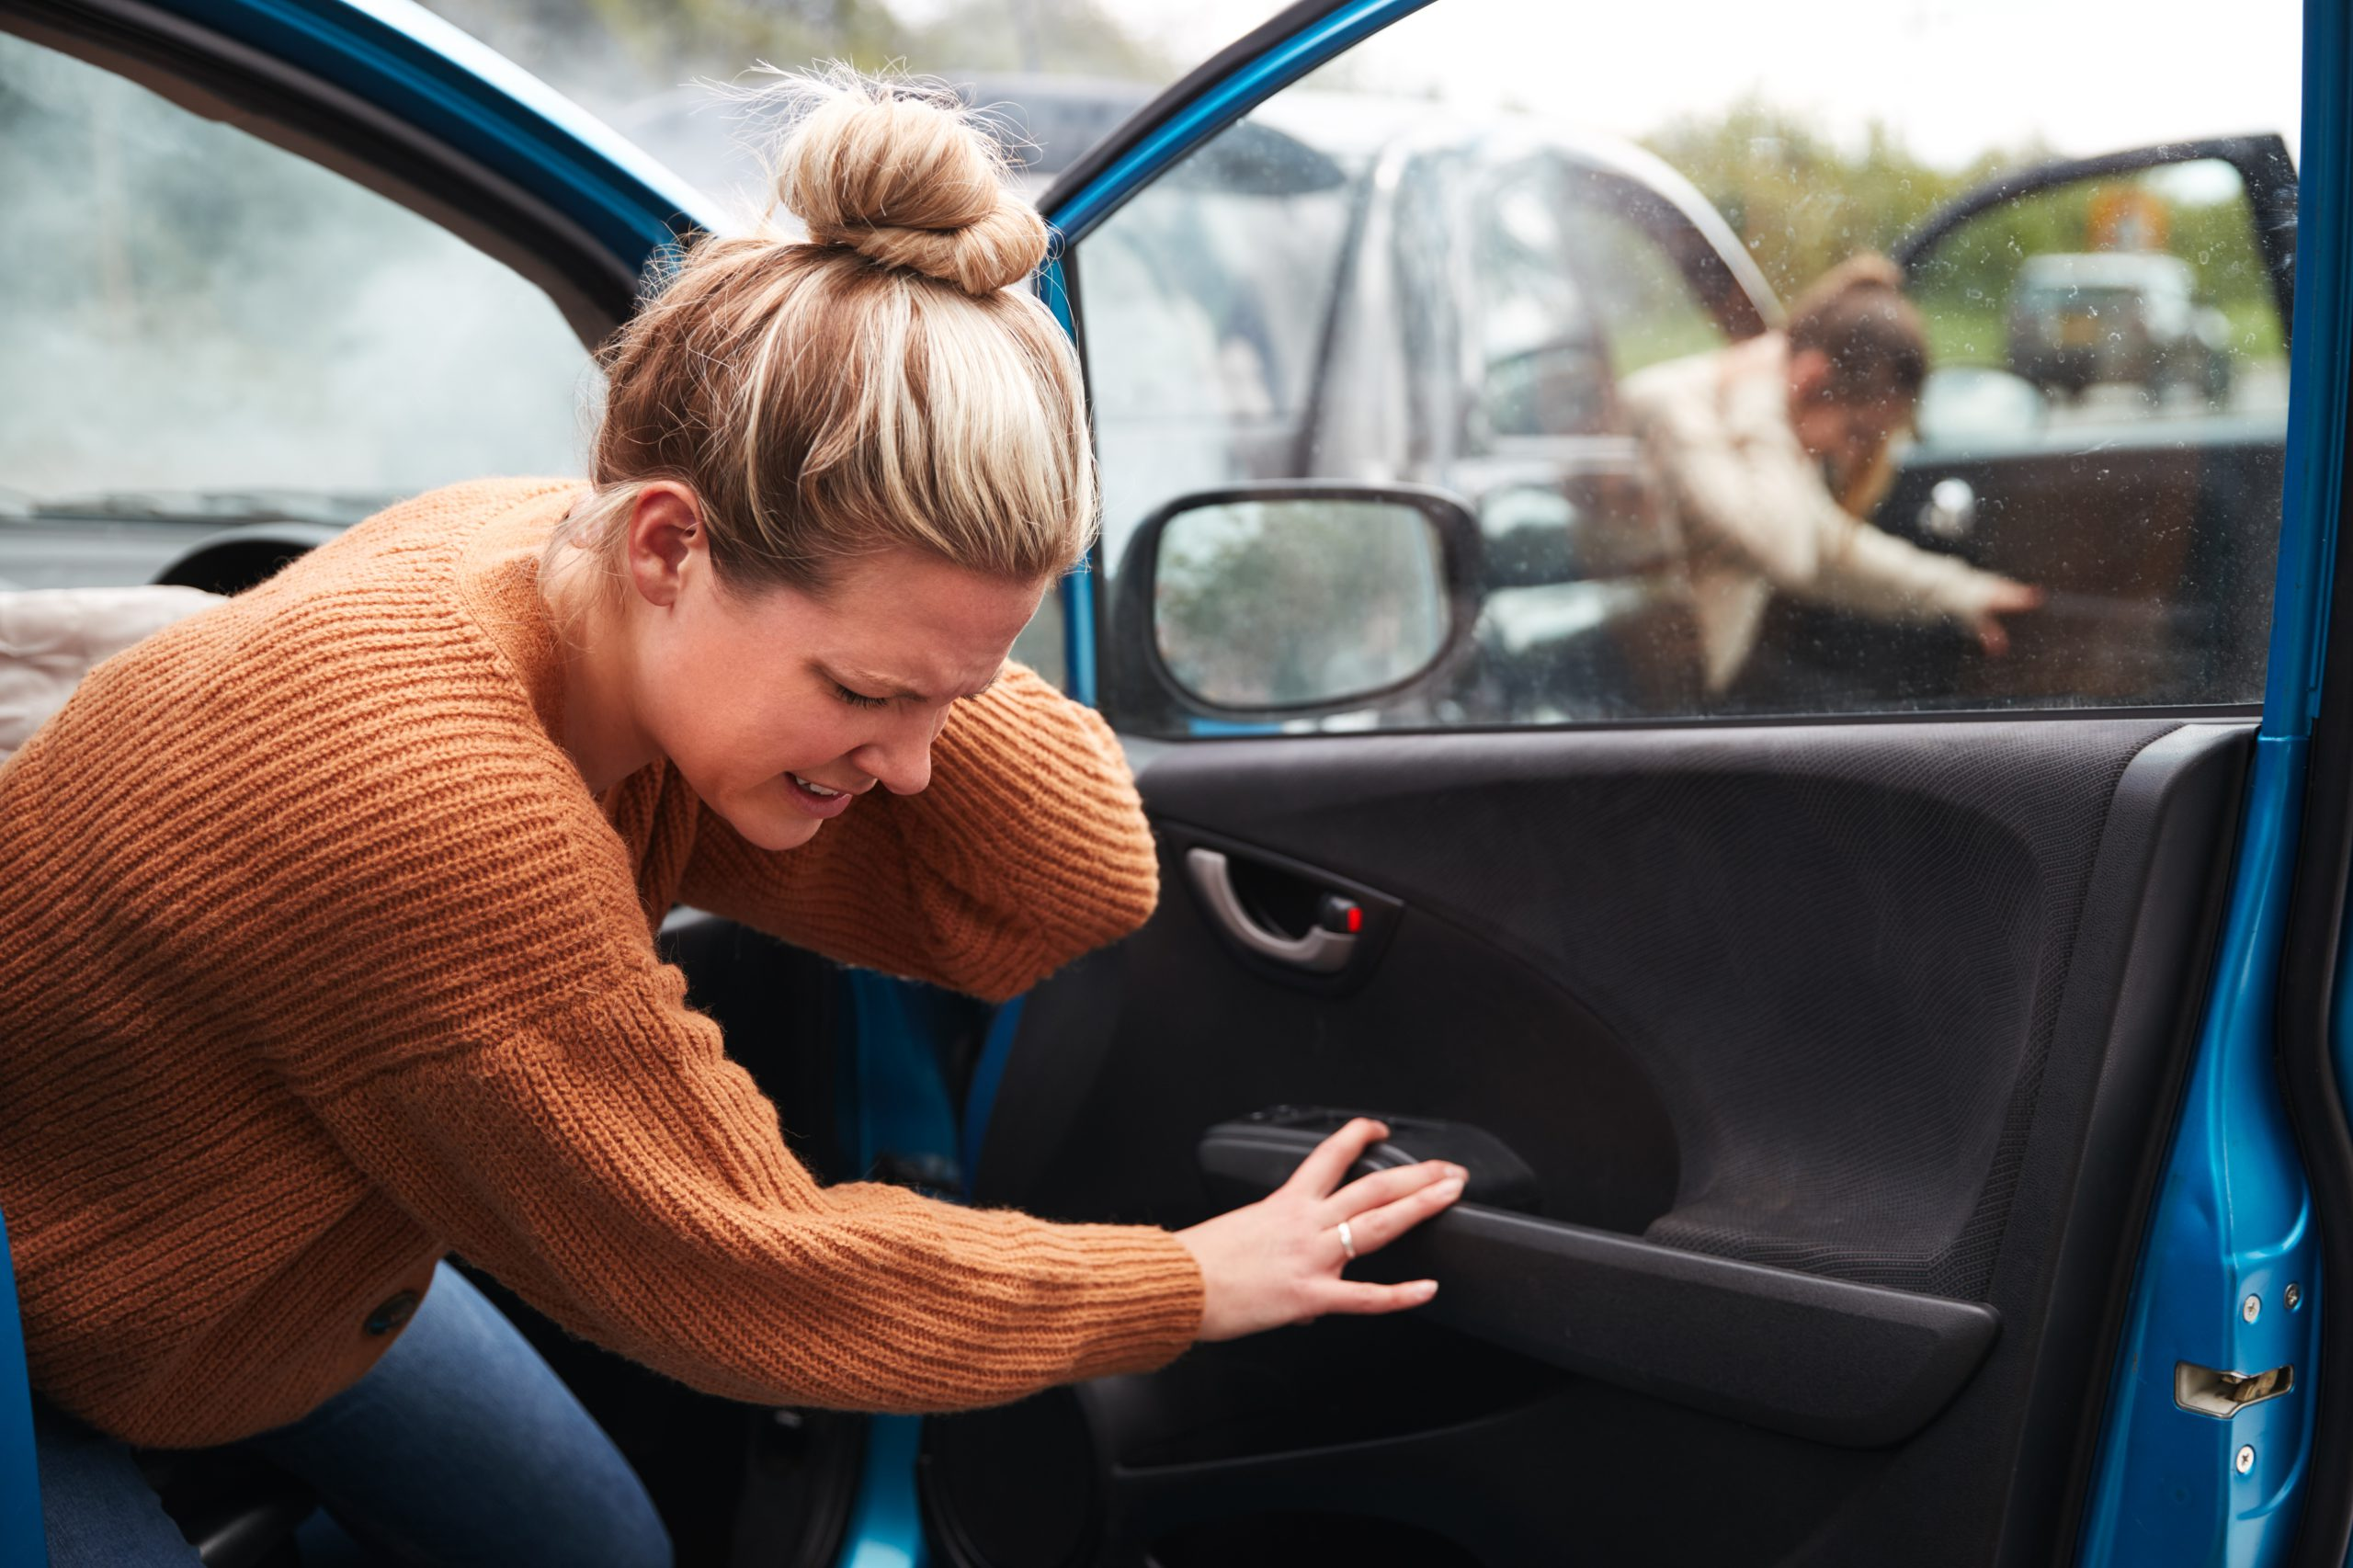 Revealed: The 9 frequently overlooked costs most car accident victims forget to claim for